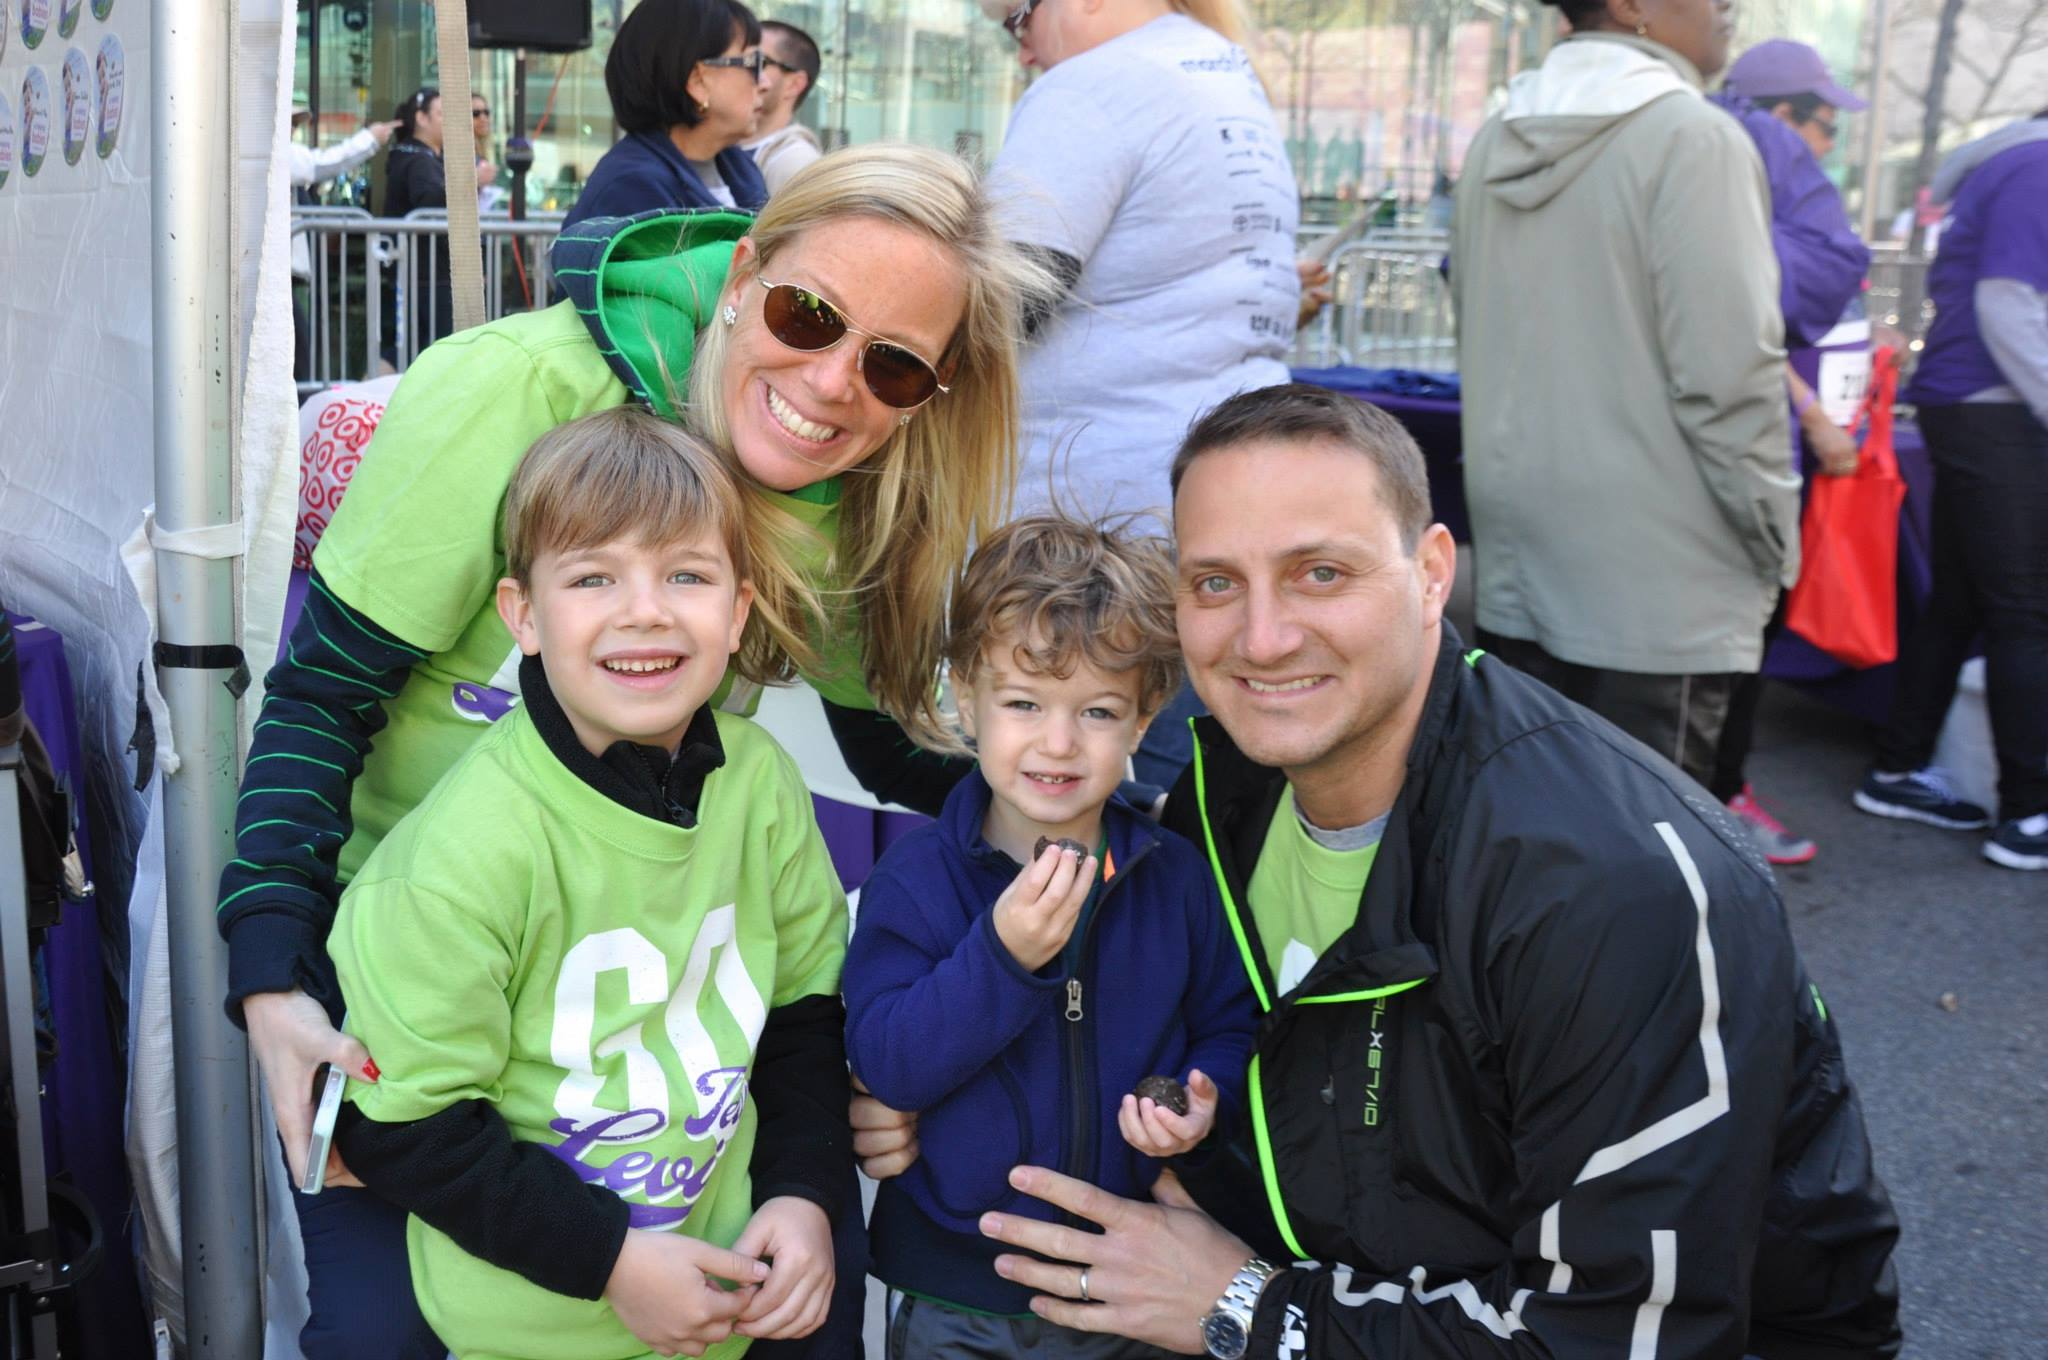 katz-family-at-the-2015-march-for-babies-walk_16731278159_o.jpg